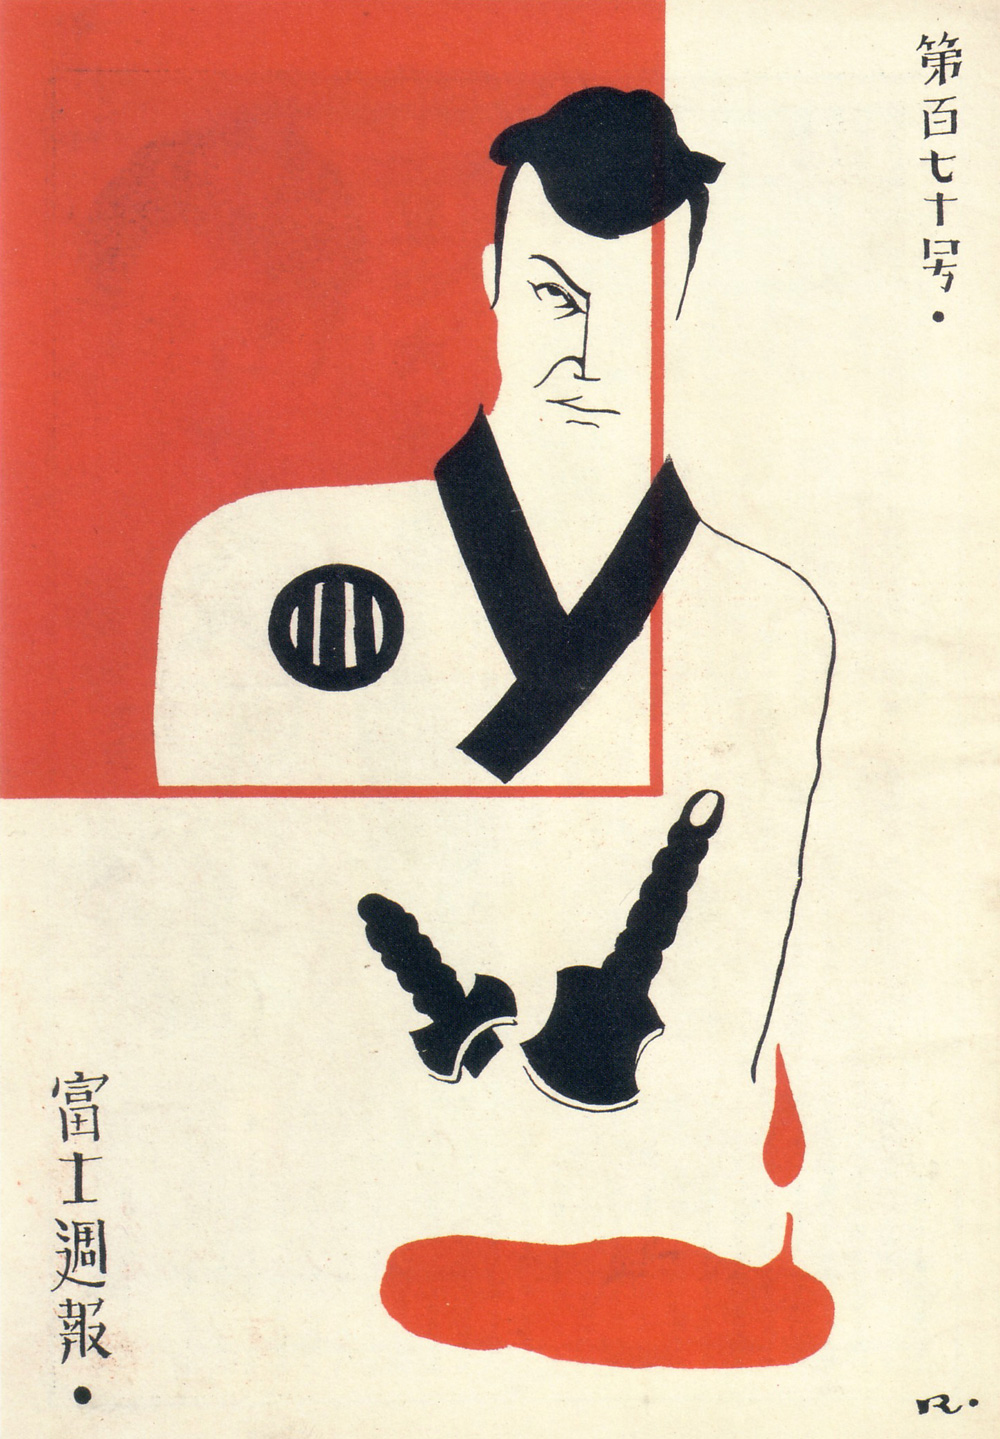 Japanese Graphic Design From The 1920s 30s Smsnchz